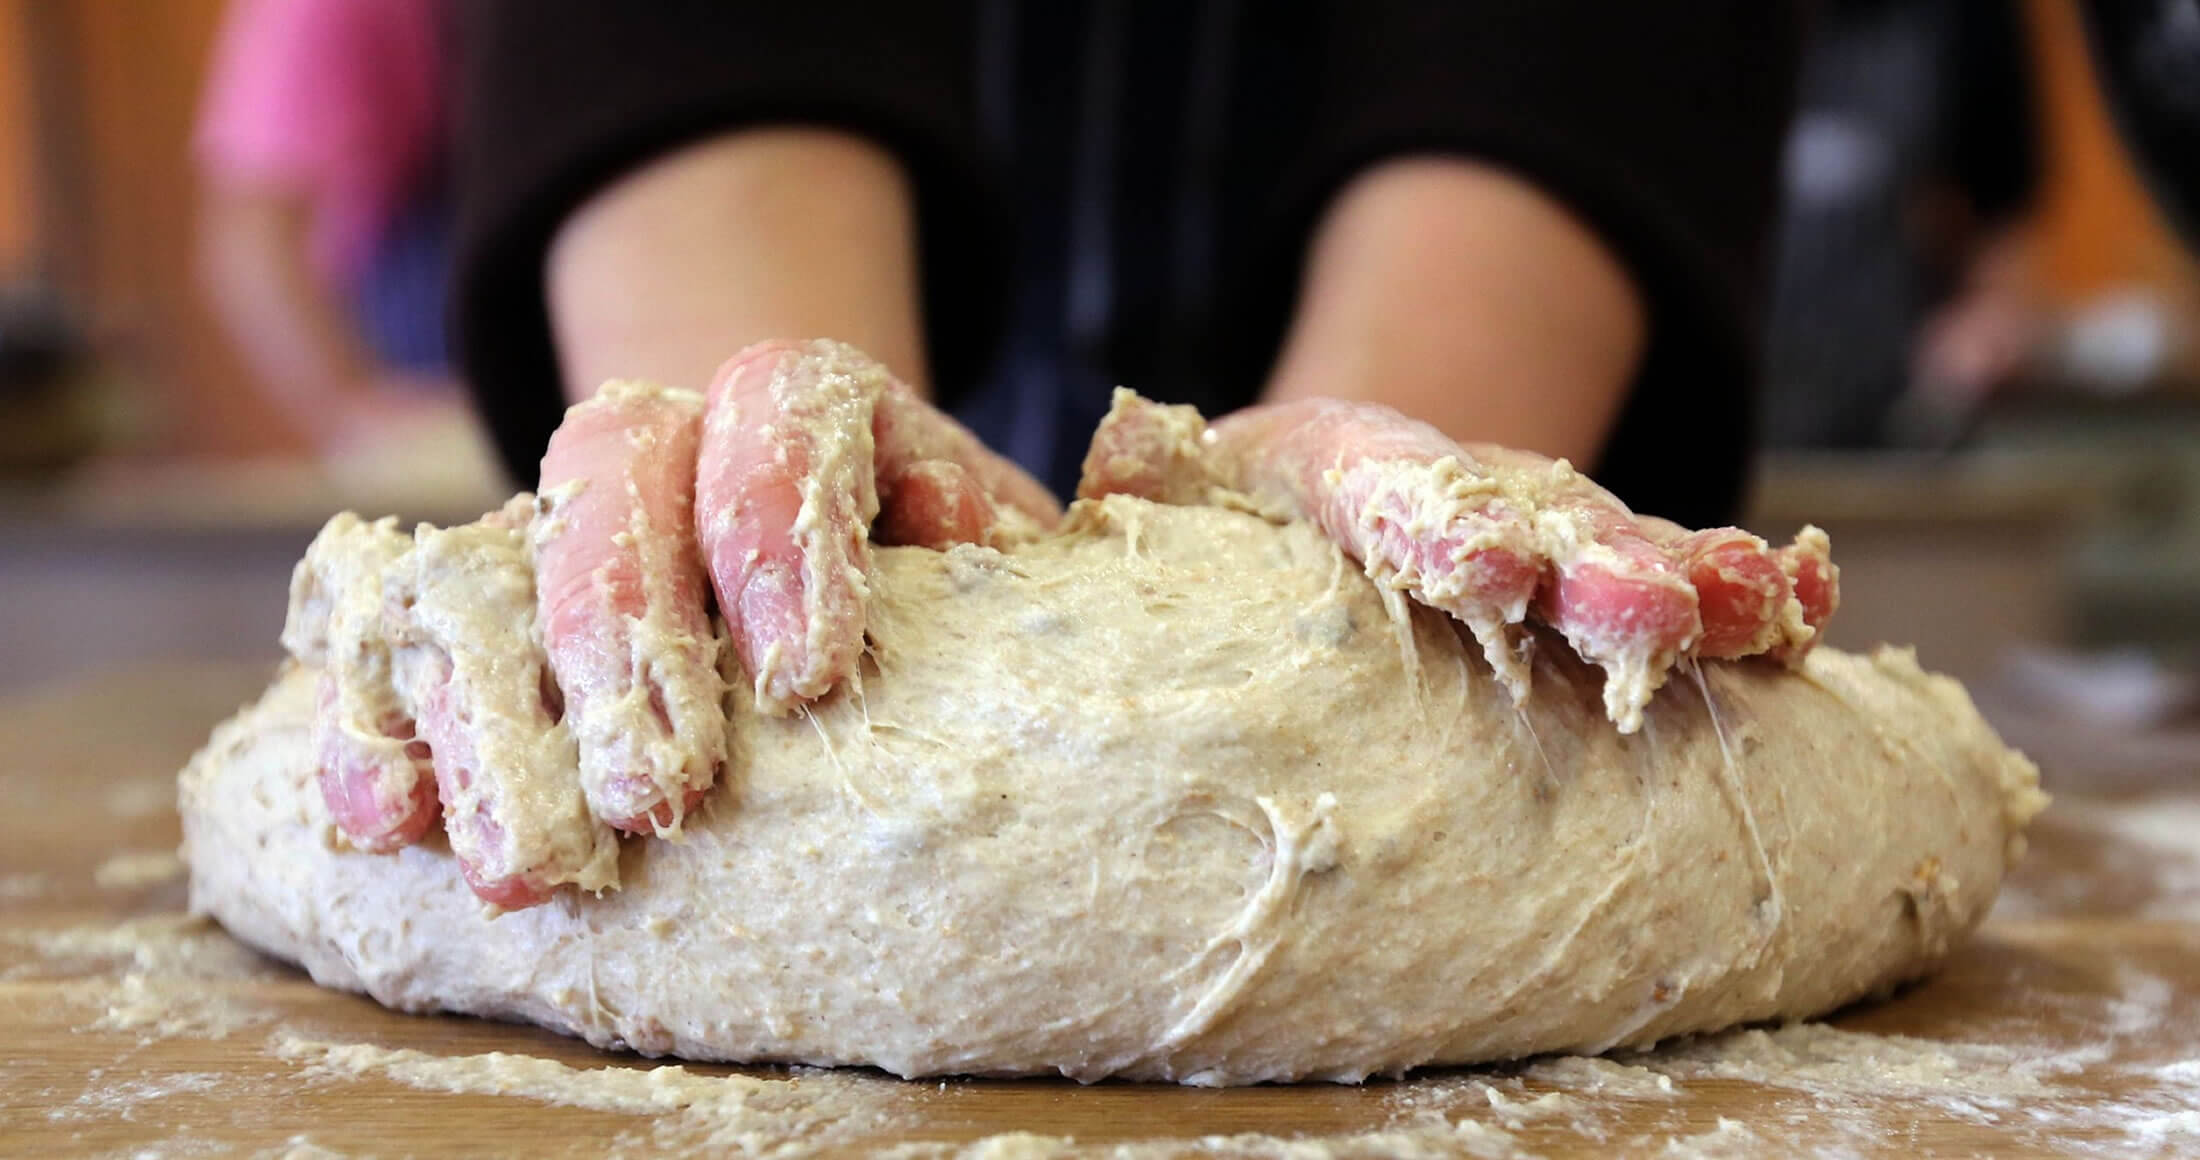 Image of hands covered in dough making bread